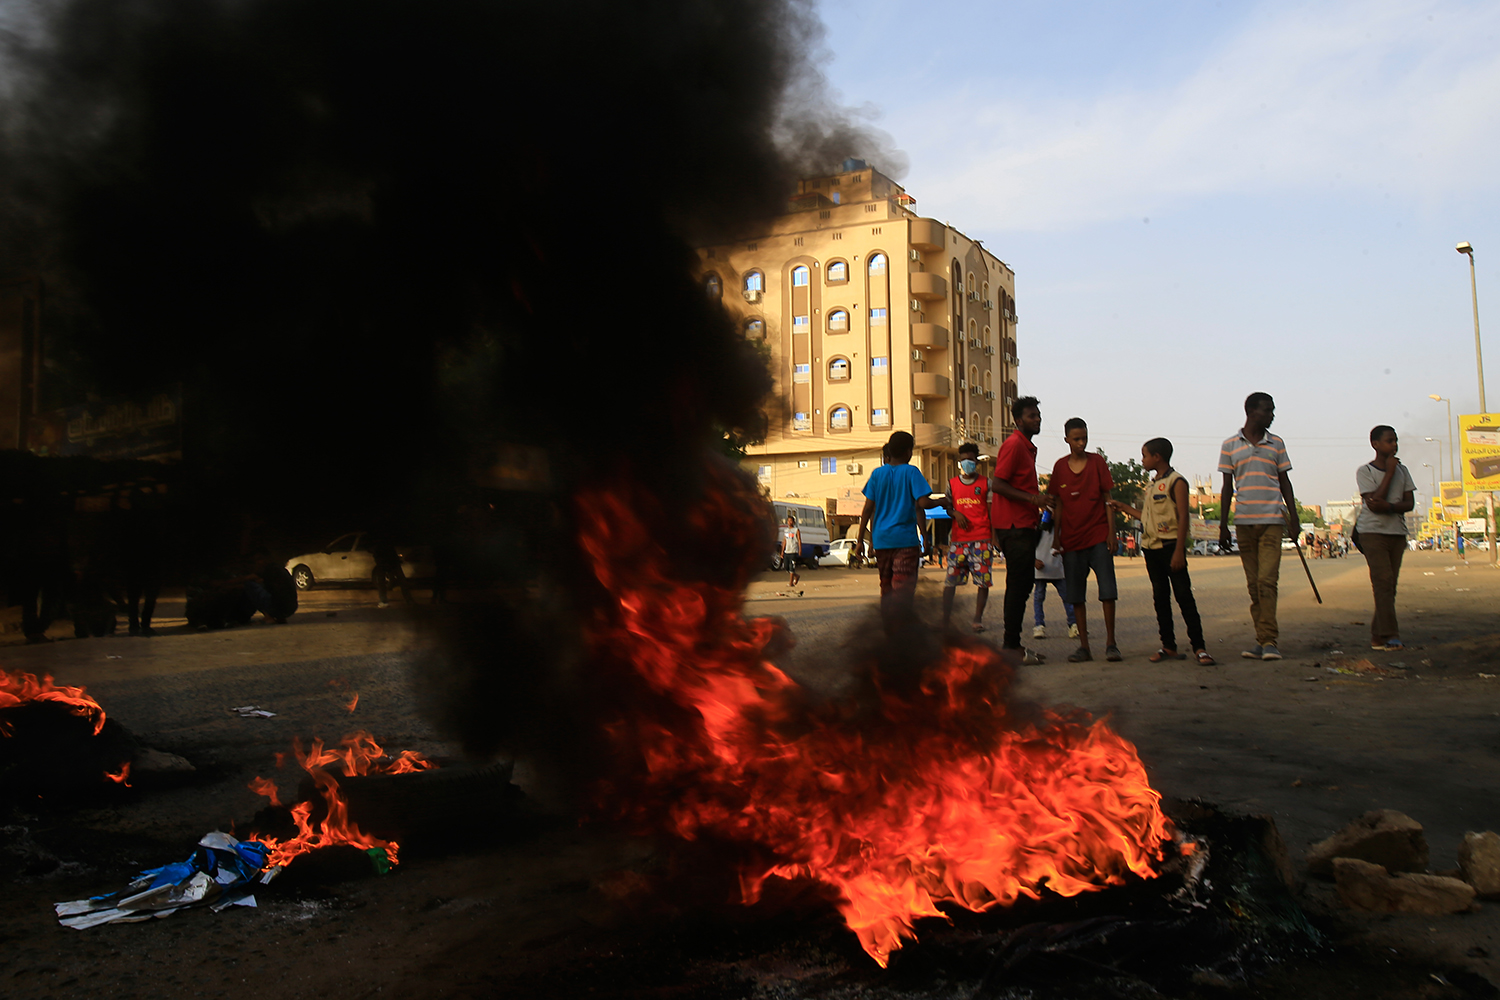 Demonstrators burn tires in the middle of a main street in Khartoum, Sudan, on July 27 as they protest the results of the probe into the June raid on a Khartoum protest camp. ASHRAF SHAZLY/AFP/Getty Images